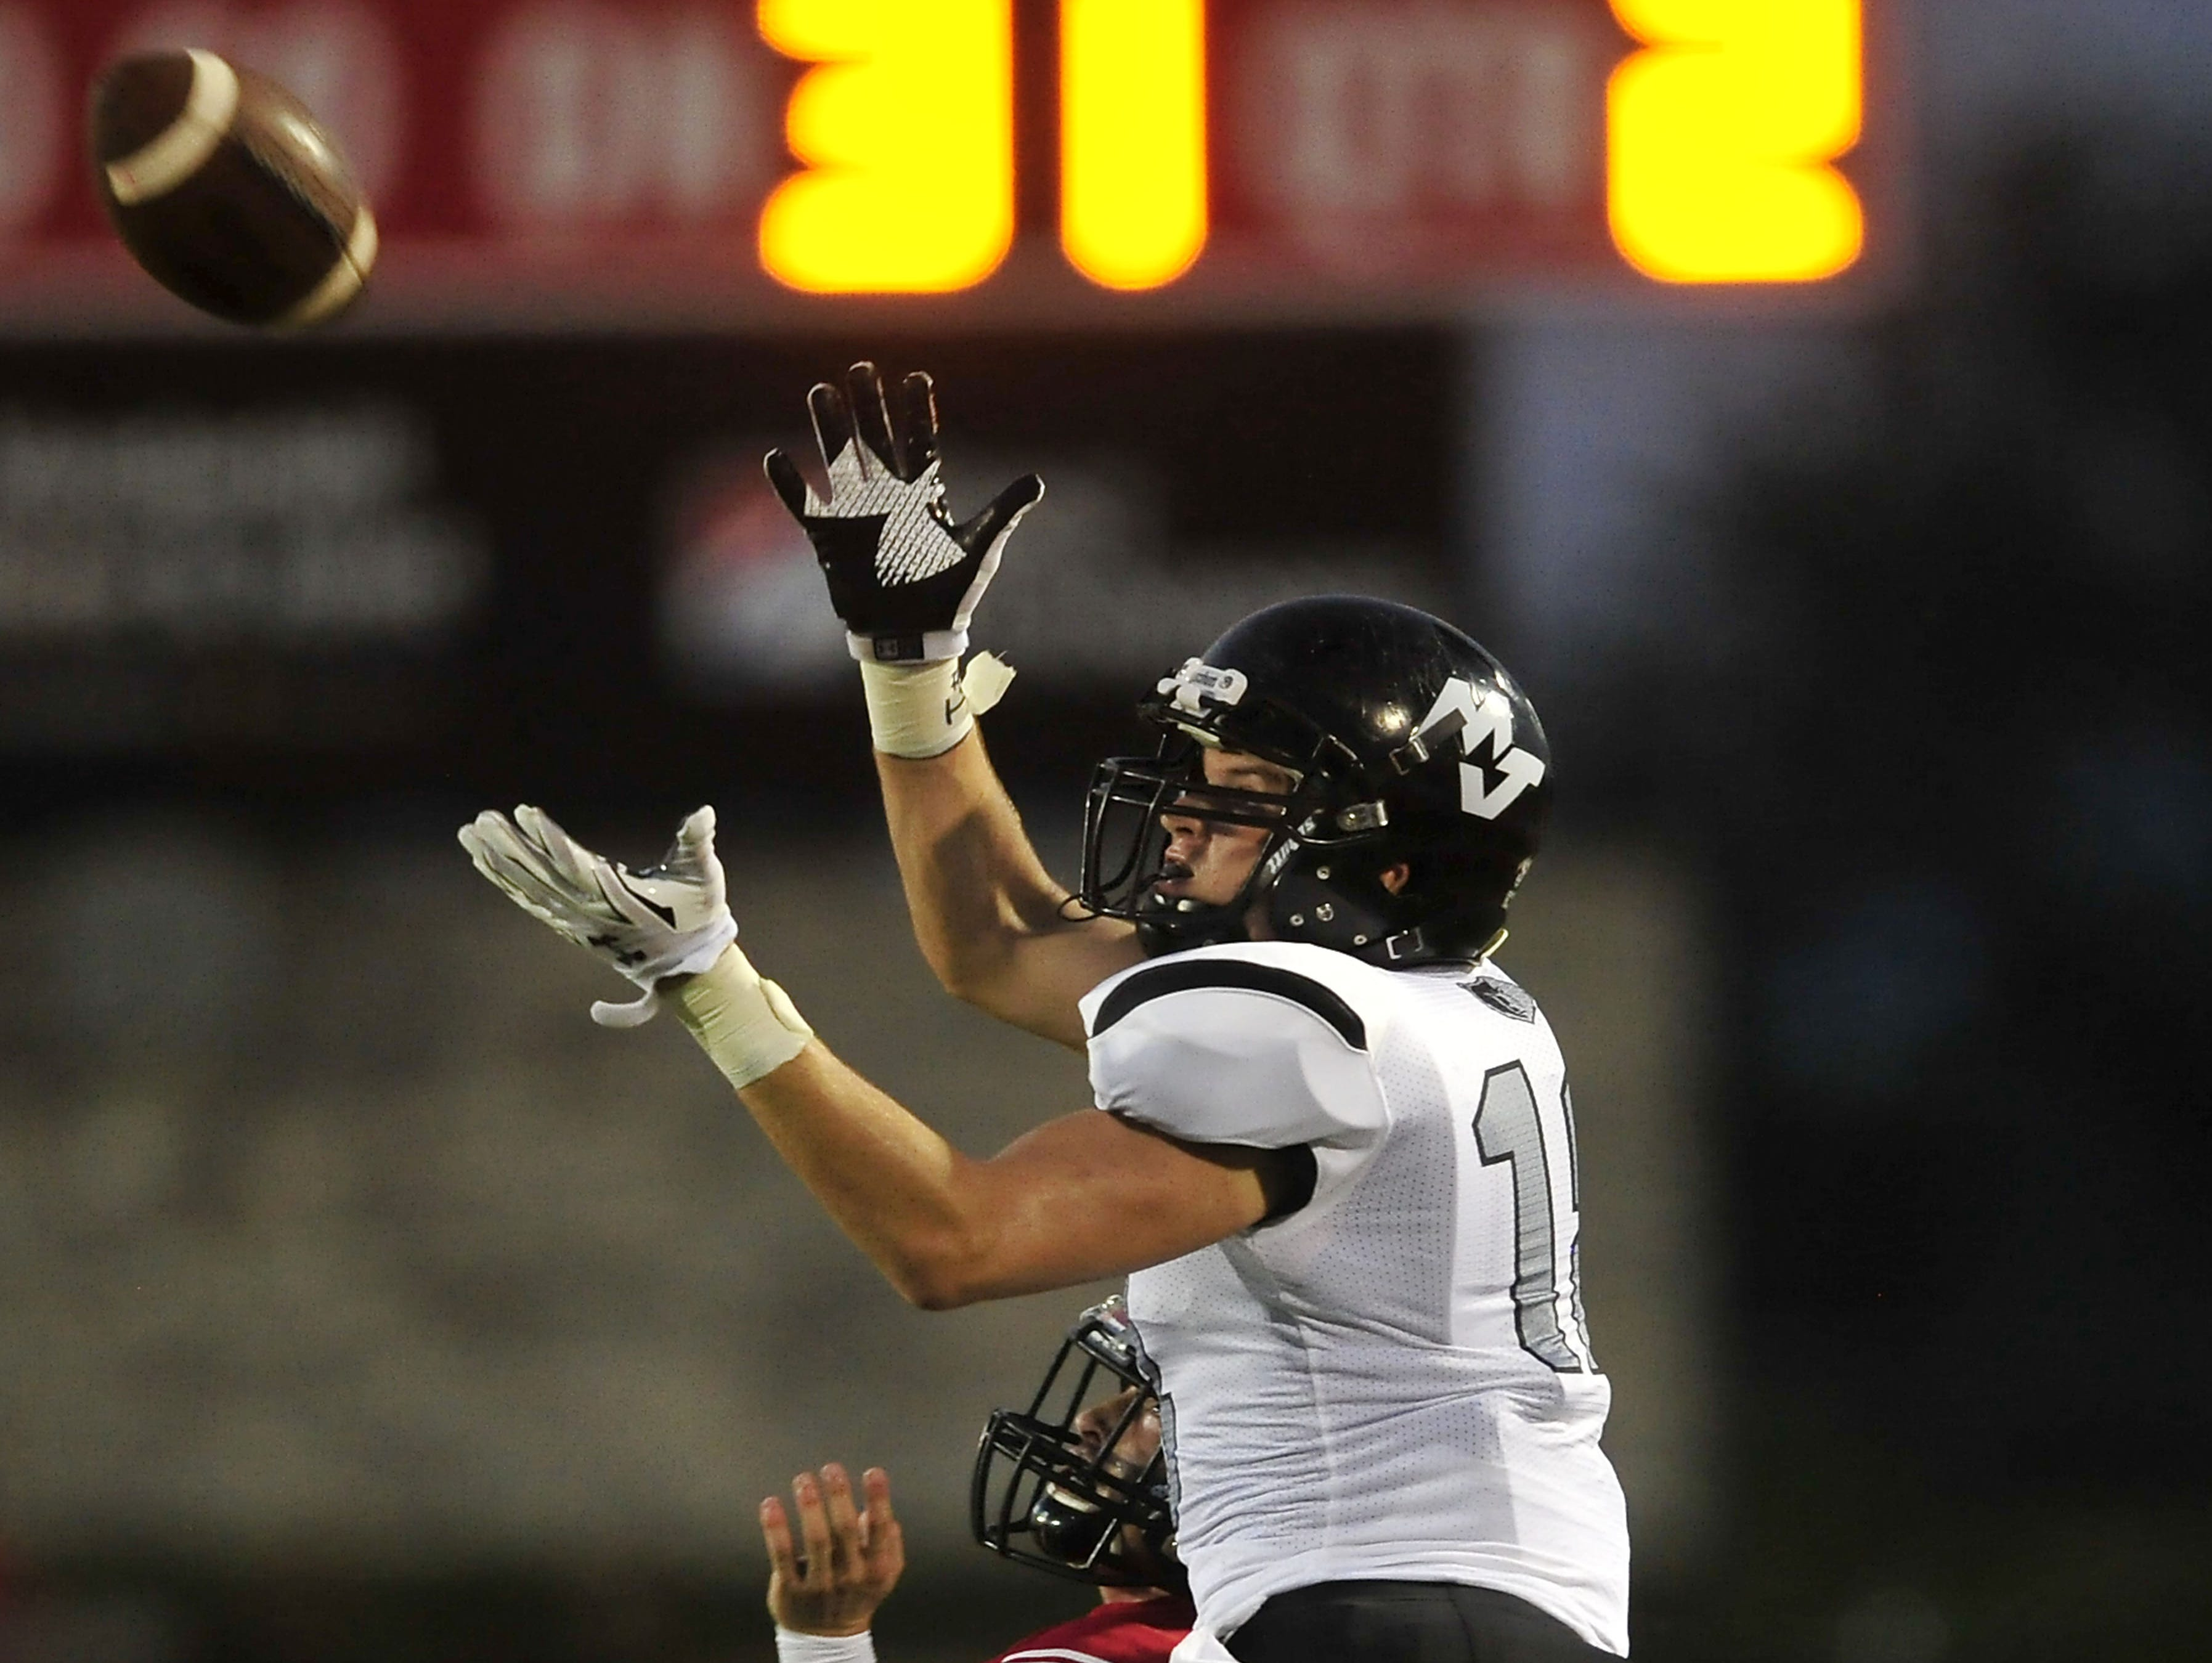 Mt. Juliet's Trey Pruitt (18) catches a pass over Ravenwood's Zack Stallcup during the first half at Ravenwood High School in Brentwood, Tenn., Friday, Sept. 4, 2015.